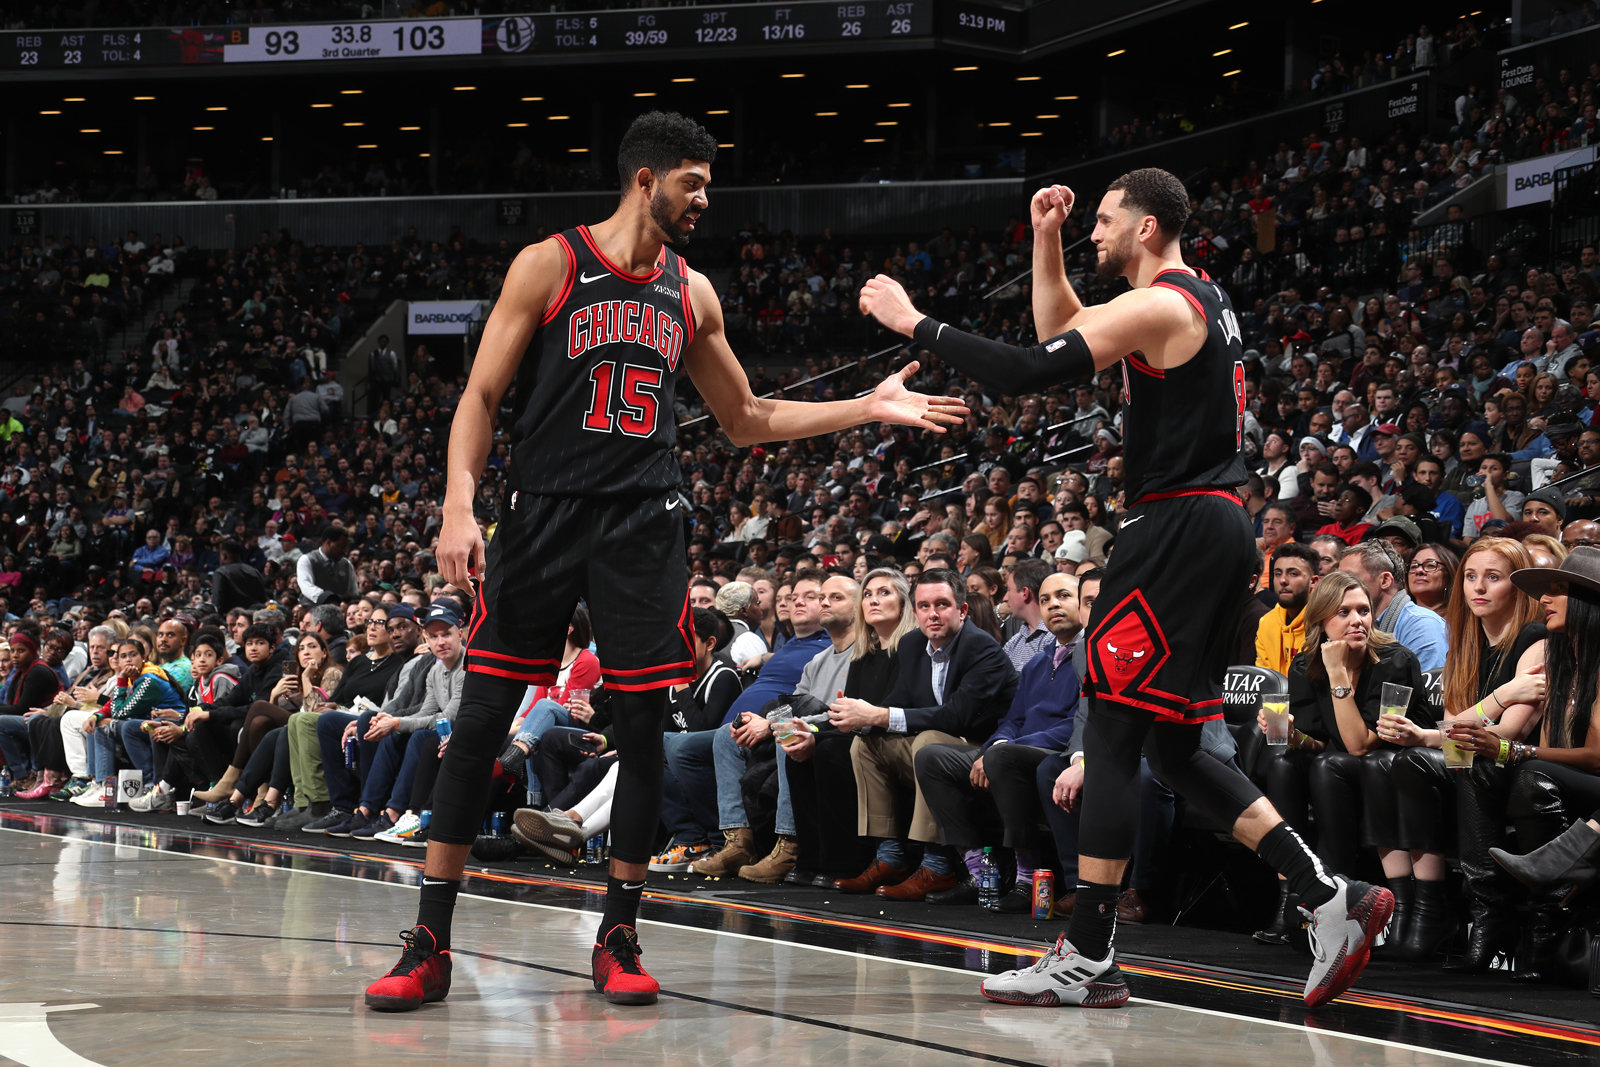 Chandler Hutchison #15 of the Chicago Bulls high-fives Zach LaVine #8 of the Chicago Bulls against the Brooklyn Nets on January 31, 2020 at Barclays Center in Brooklyn, New York.